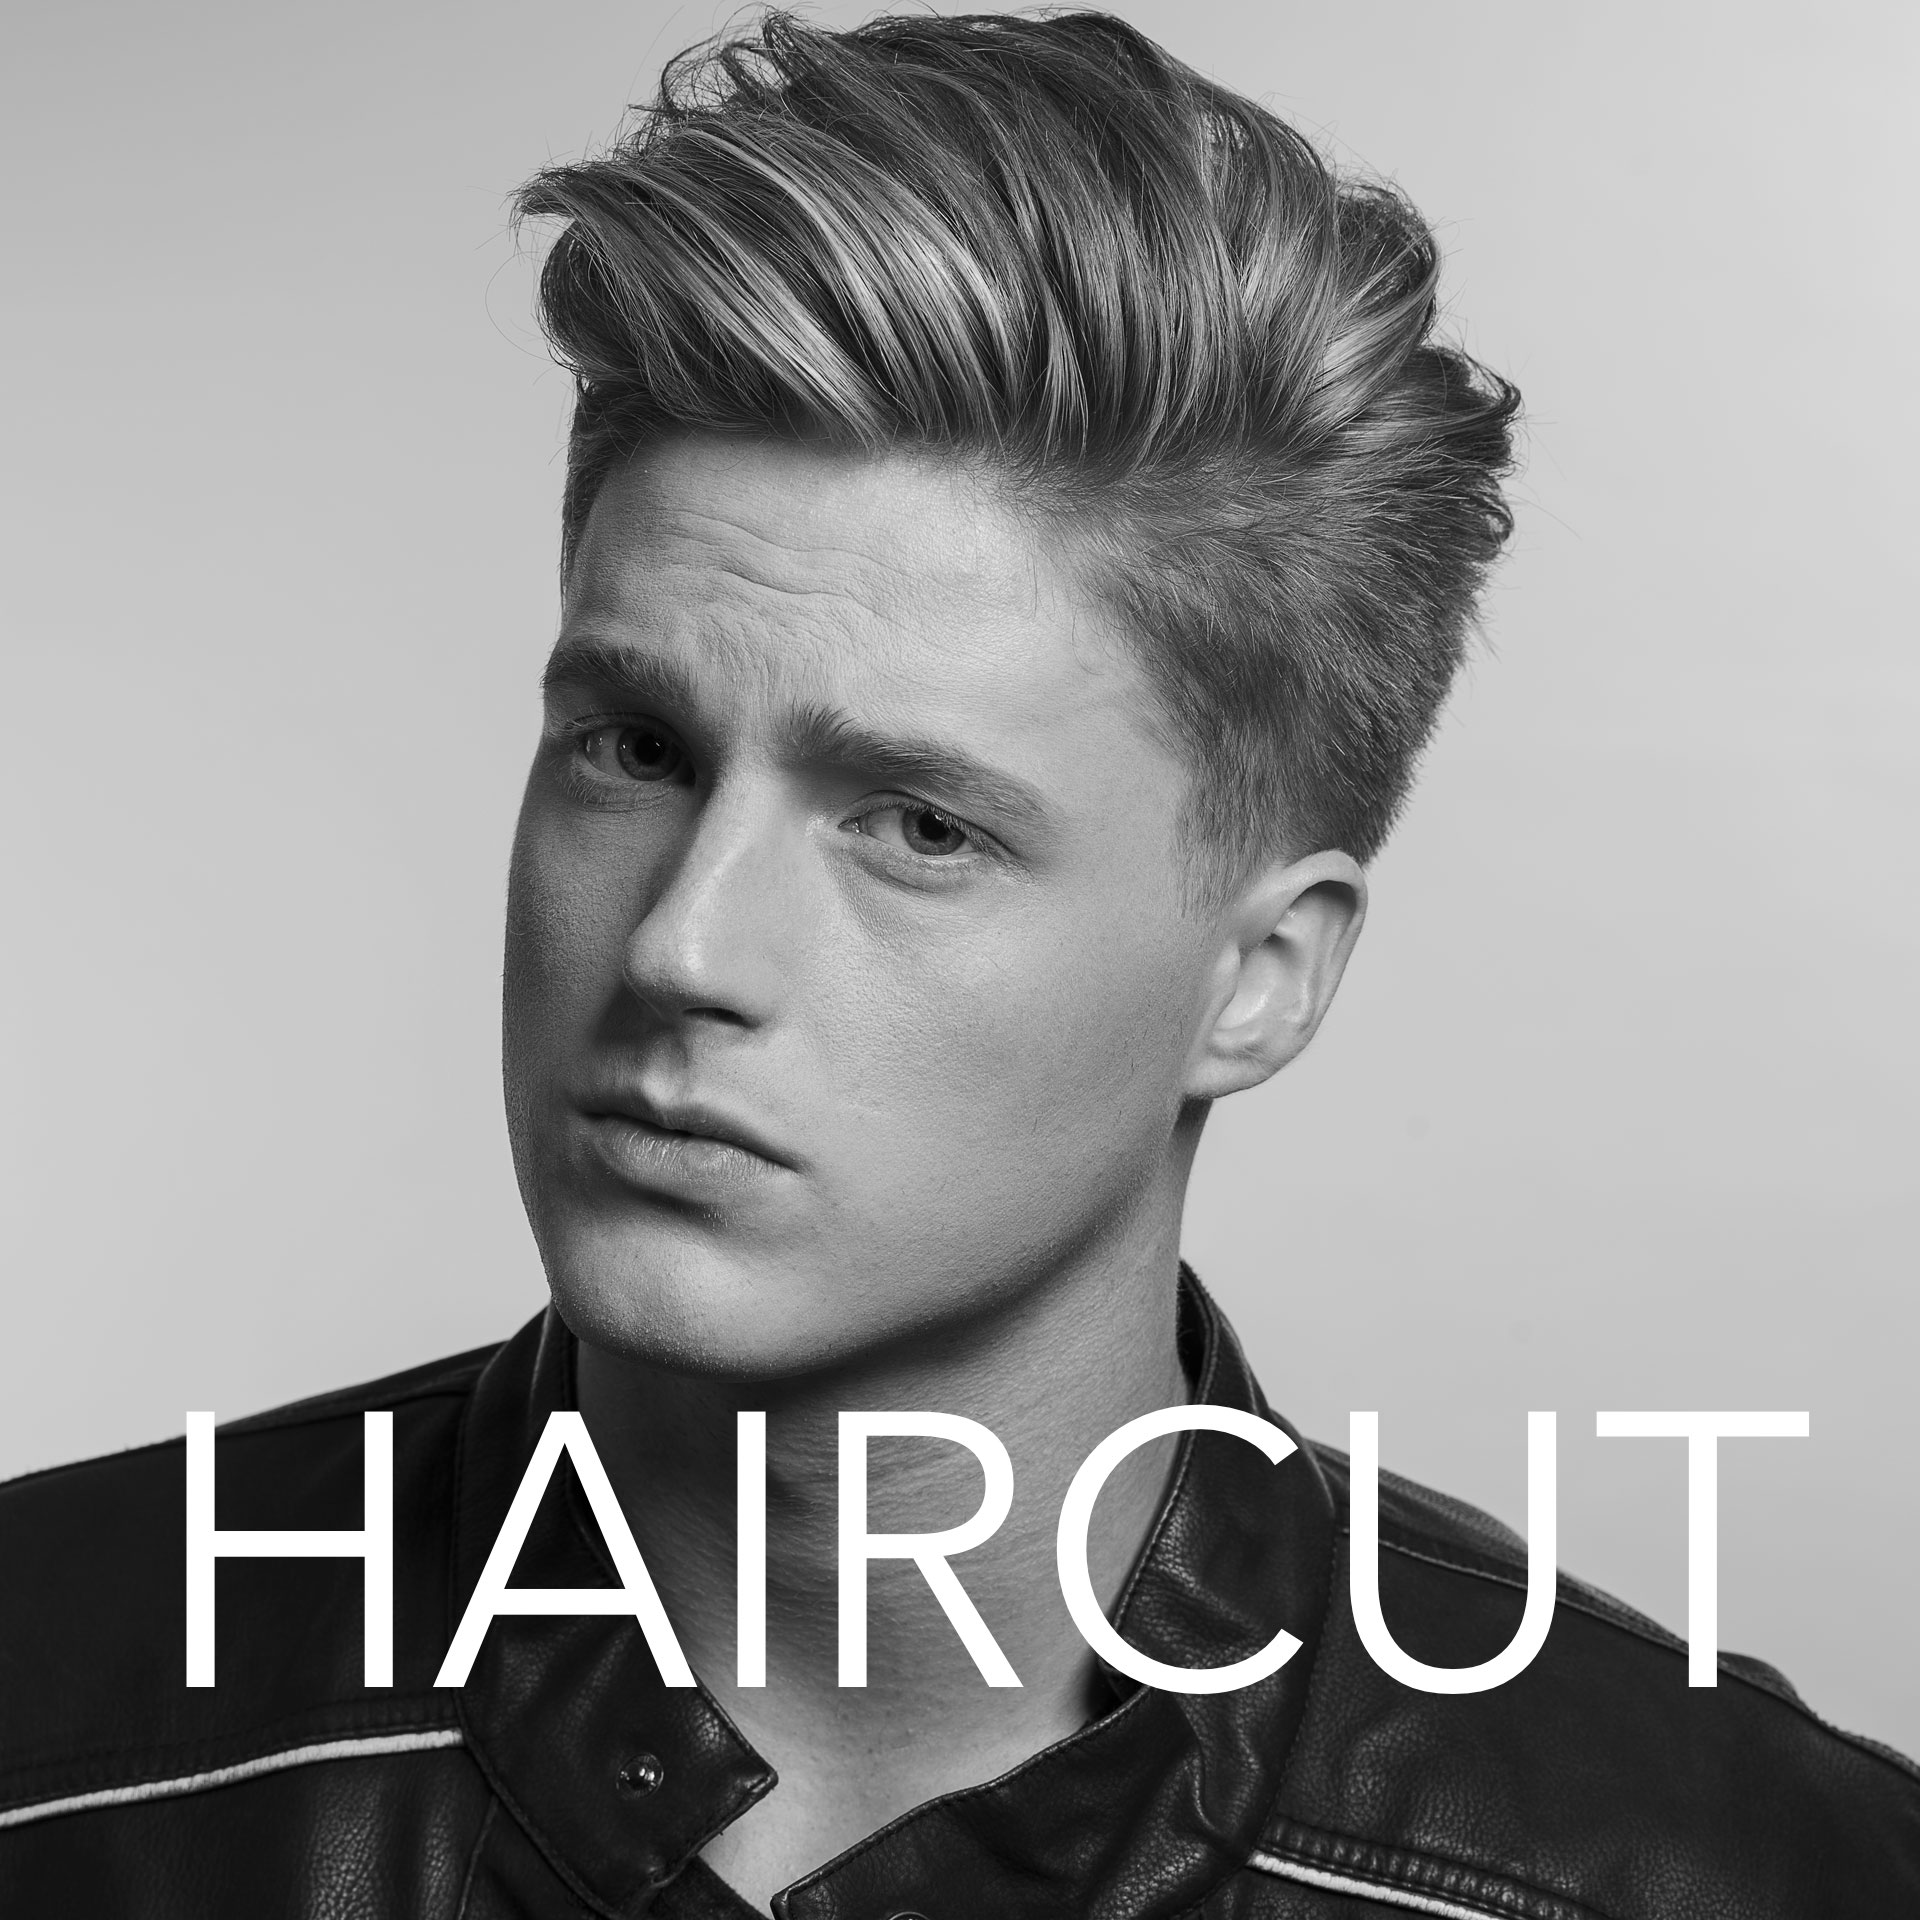 mens haircuts dallas hair salon plano frisco dallas best mens haircut allen 3017